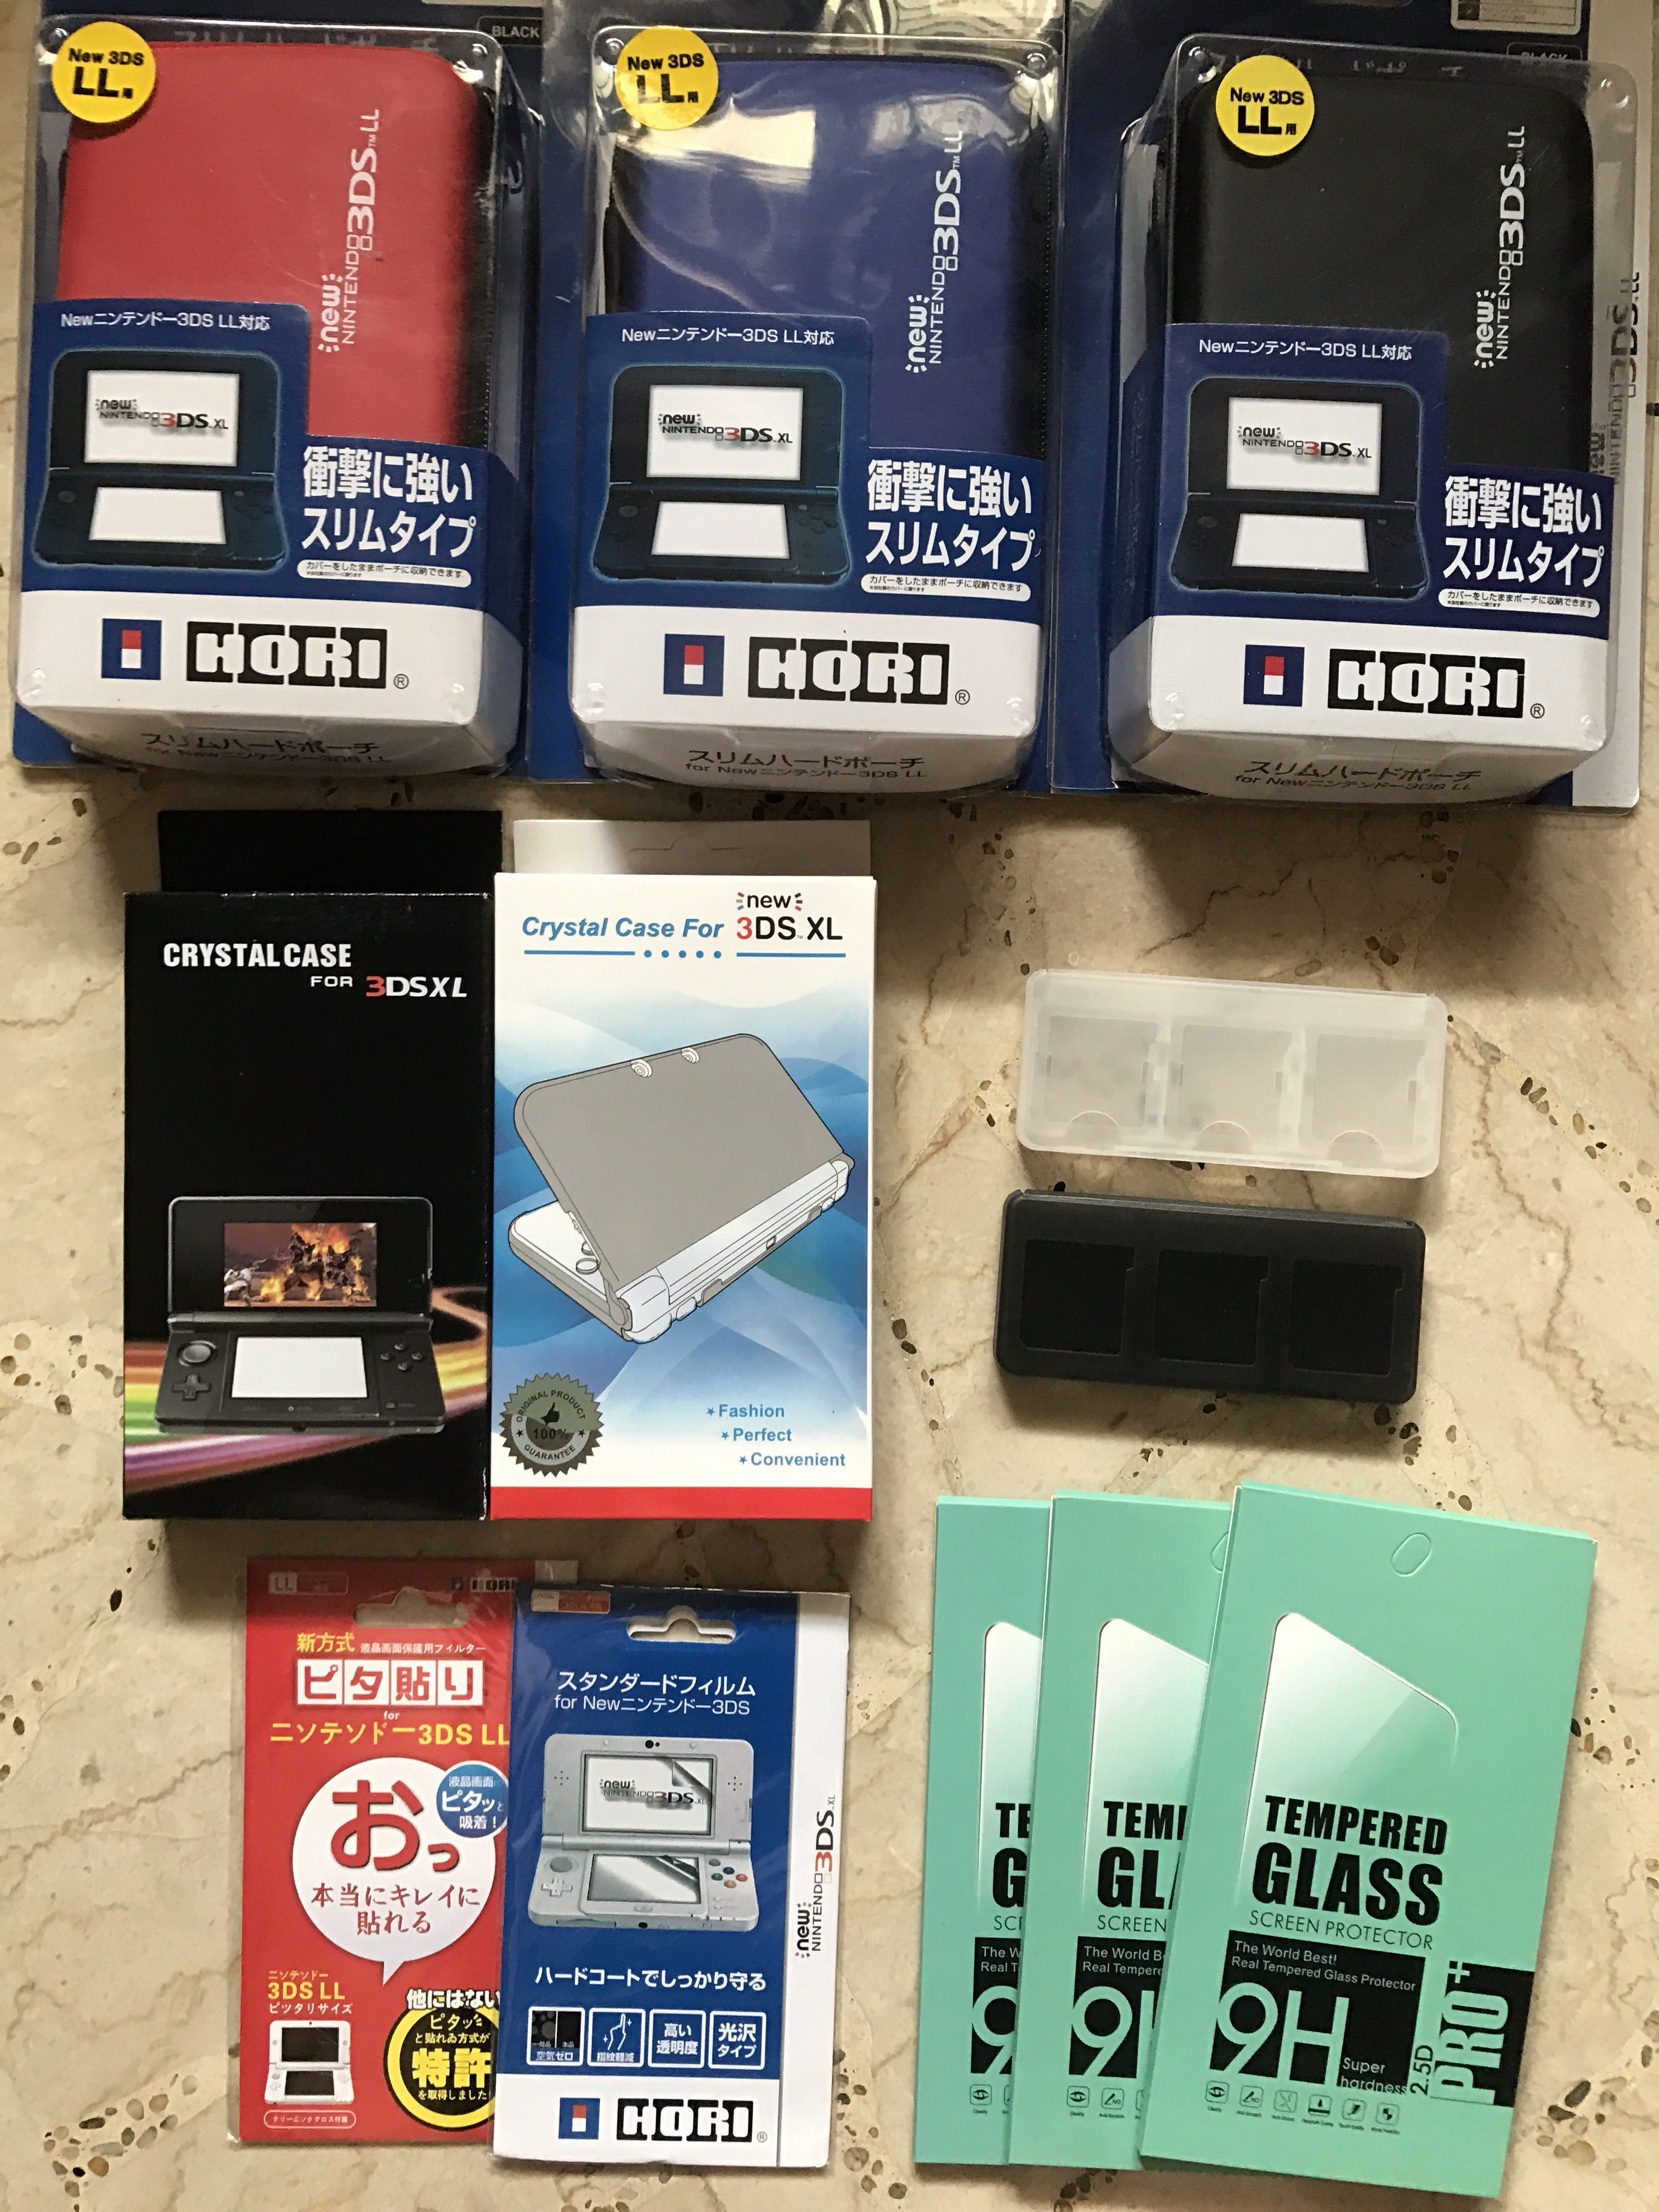 New 3ds Xl Ll And Old Accessories Toys Games Video Screen Tempered Glass For Hori Photo